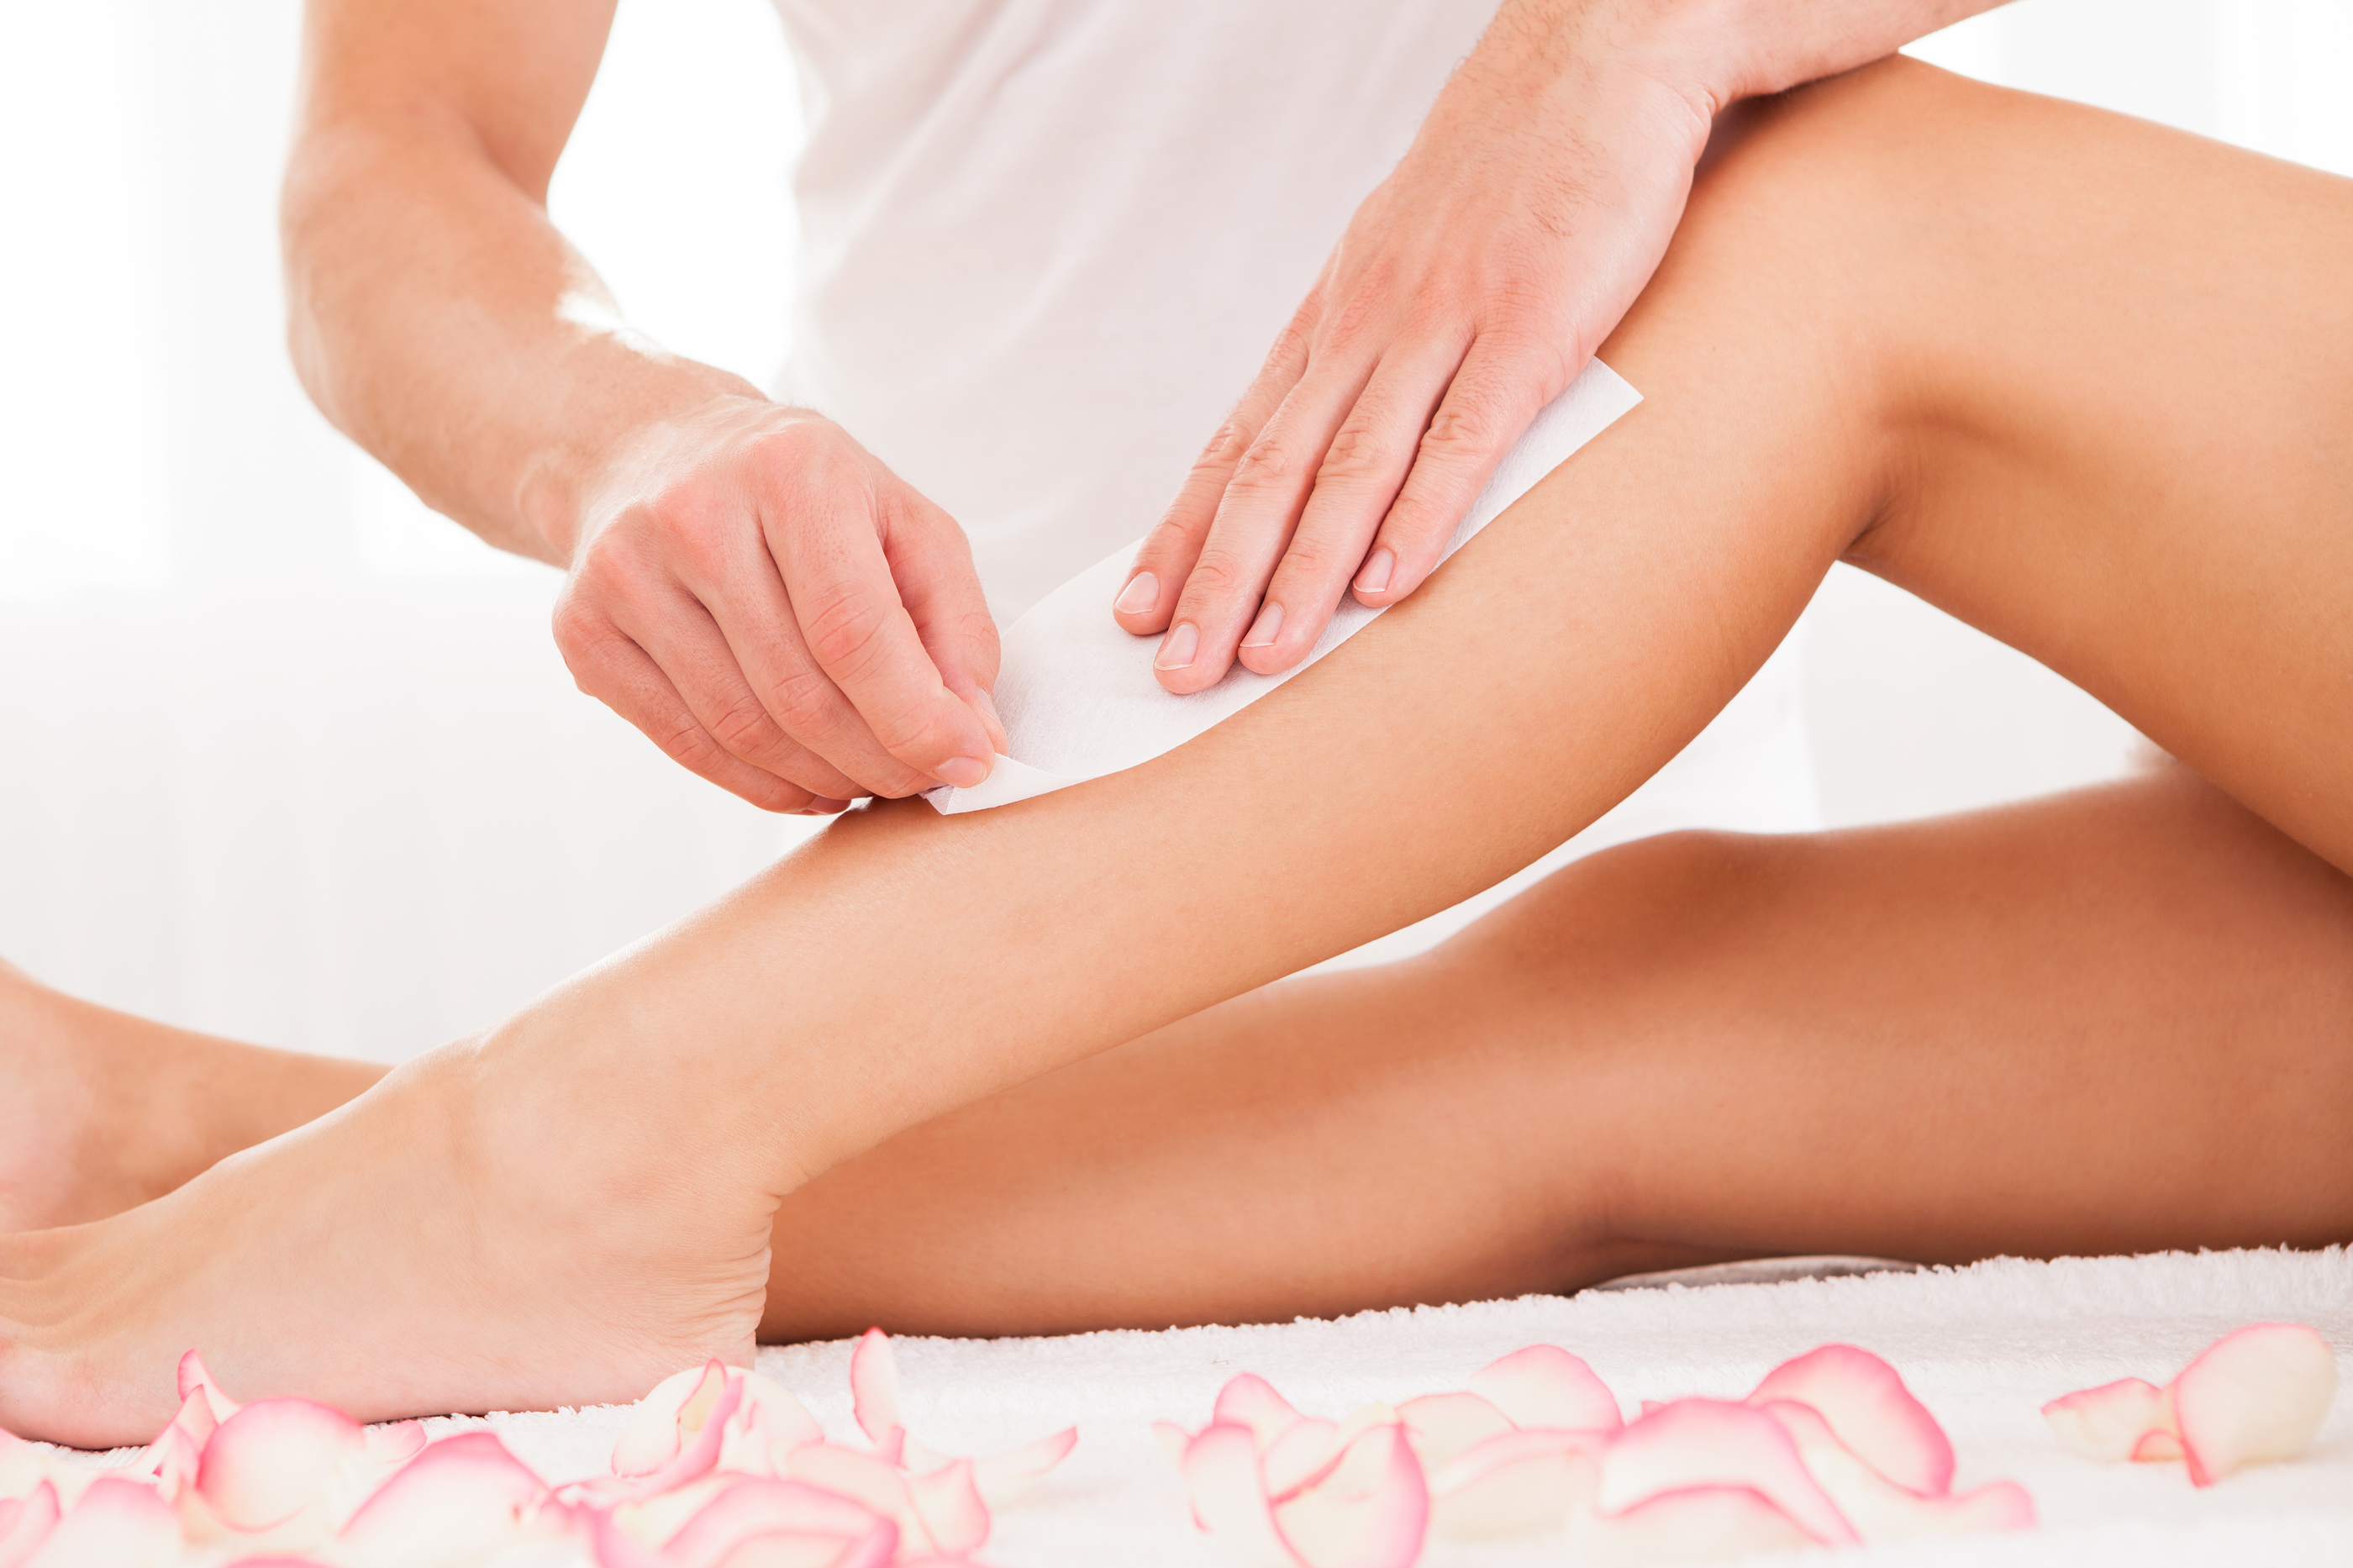 The Do's And Don'ts Of Waxing